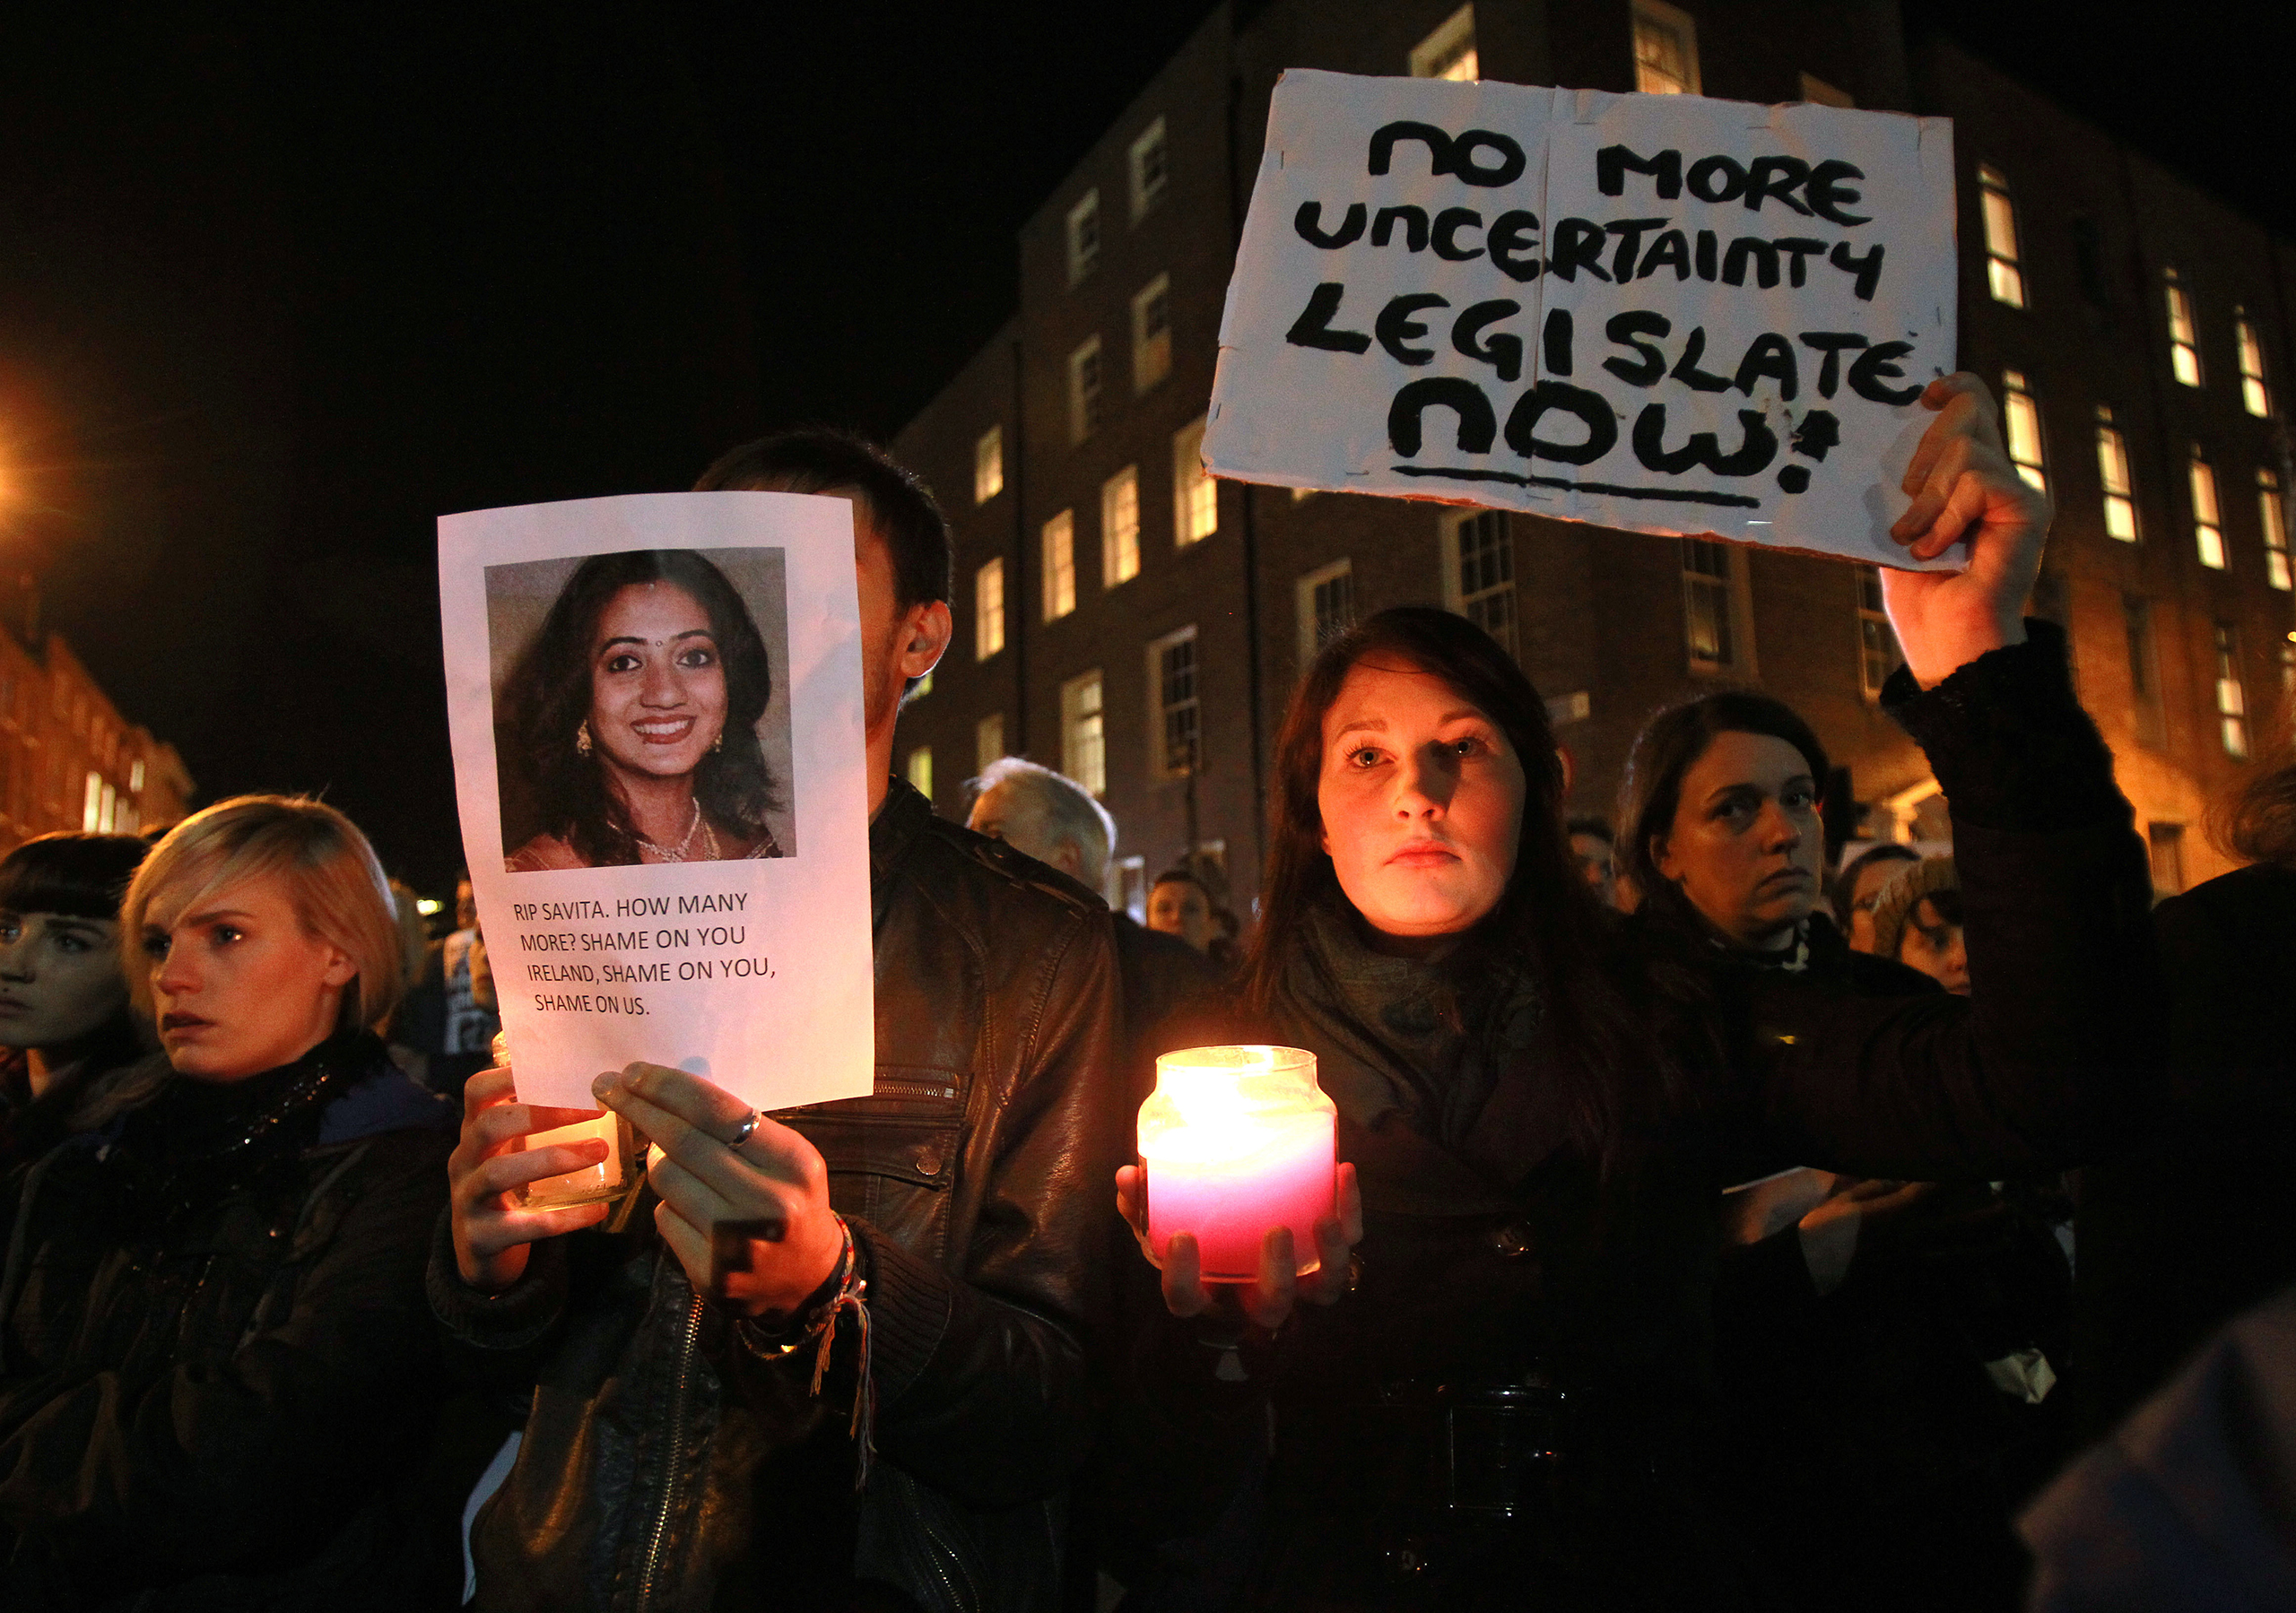 Protestors hold pictures of Savita Halappanavar, an Indian woman who was allegedly refused a pregnancy termination after doctors told her it was a Catholic country, as they gather outside the Parliament building during a demonstration in favor of abortion legislation in Dublin on Nov. 14, 2012.